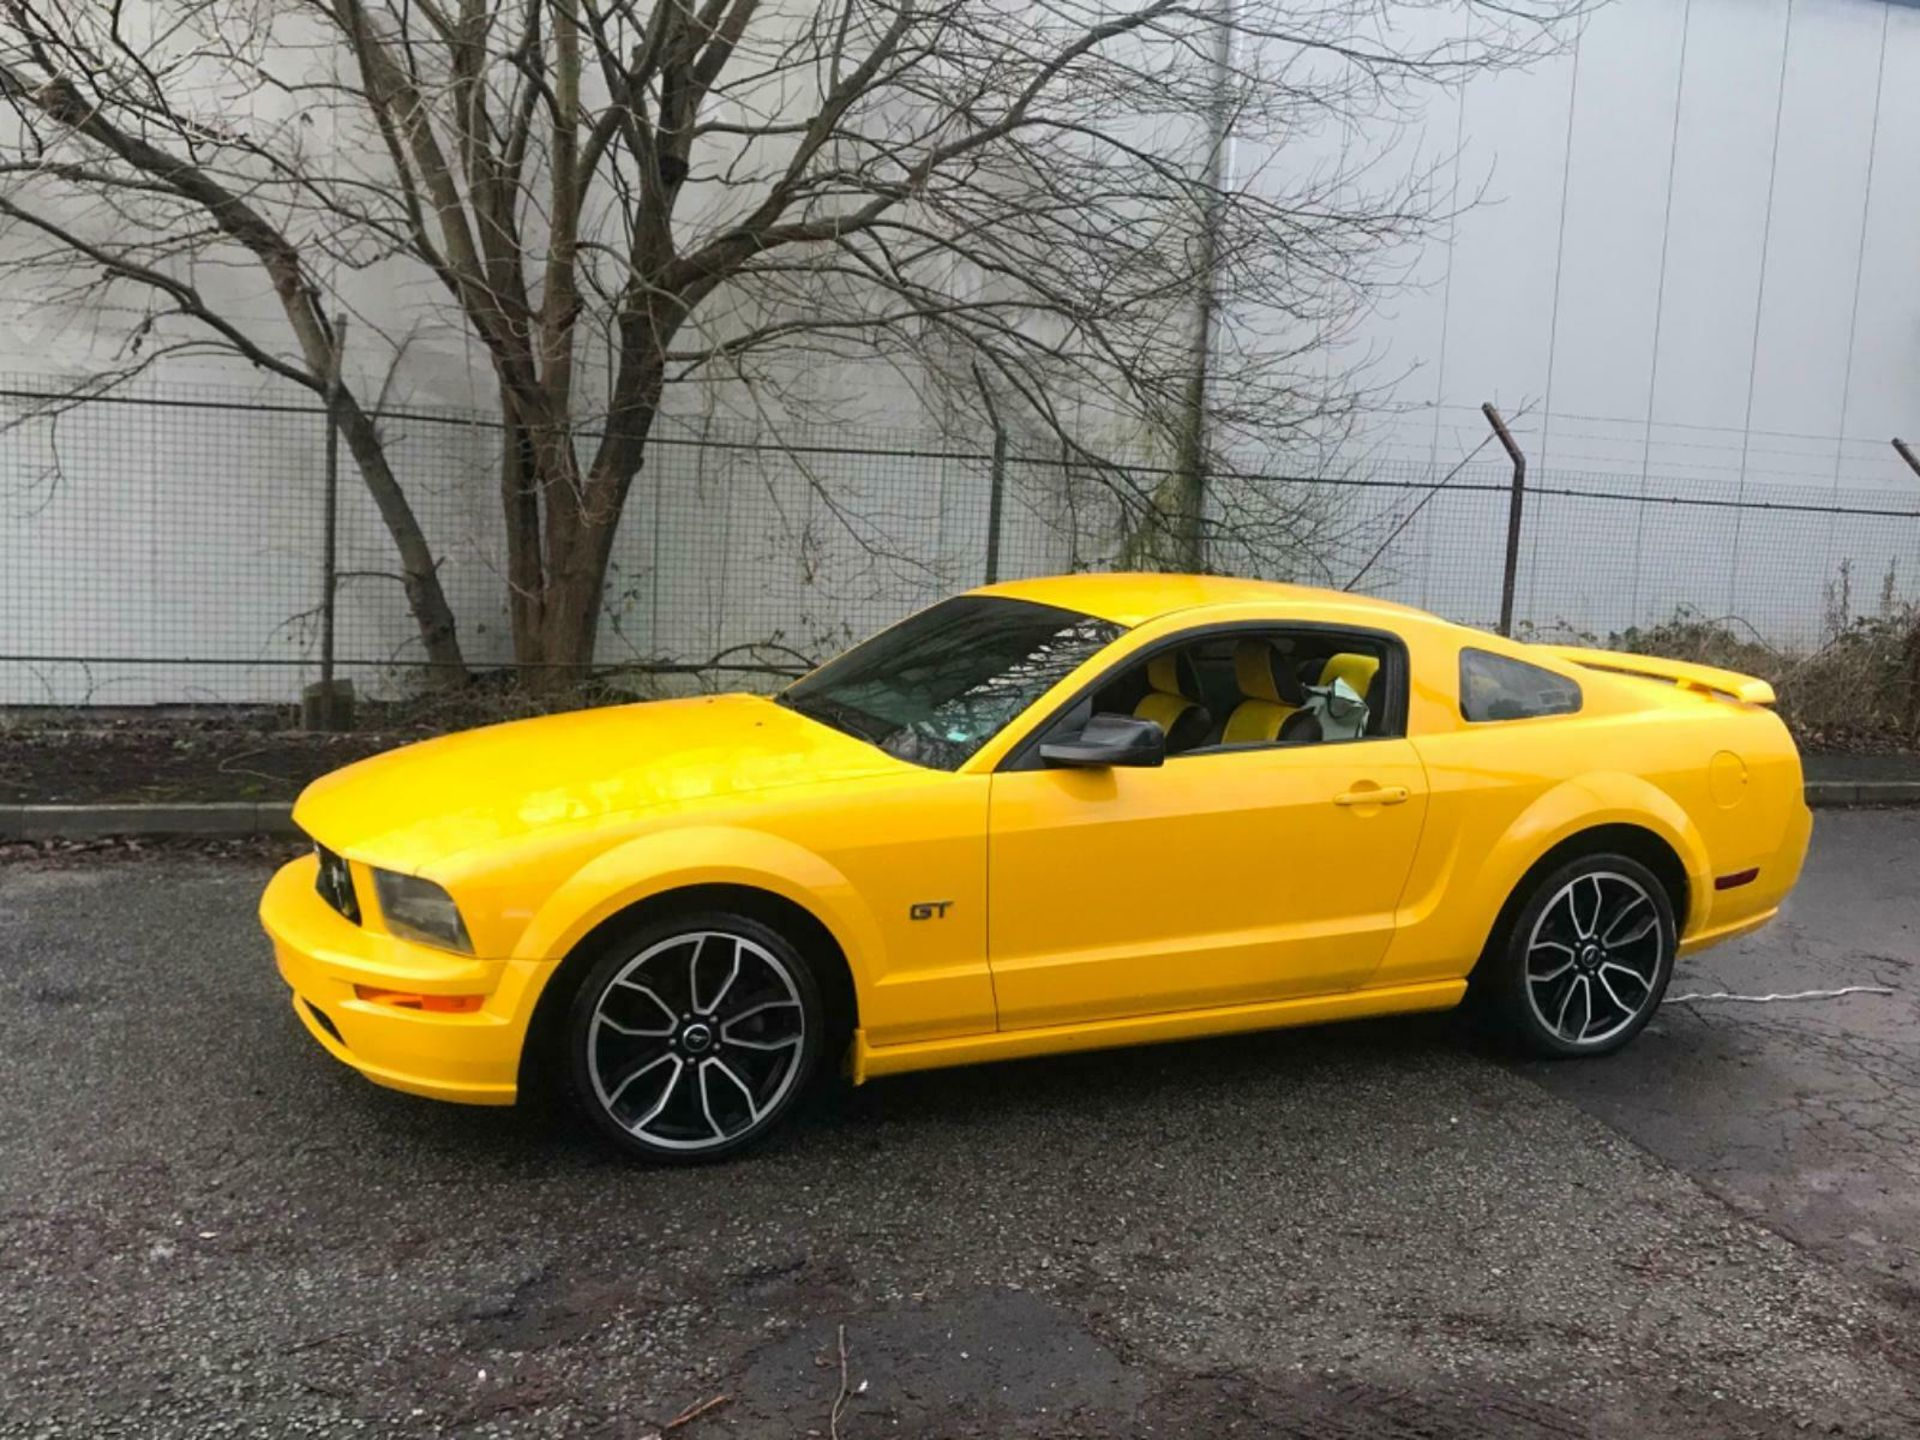 Lot 70 - 2006 FORD MUSTANG 4.6 V8 GT RARE MANUAL SCREAMING YELLOW LHD FRESH IMPORT